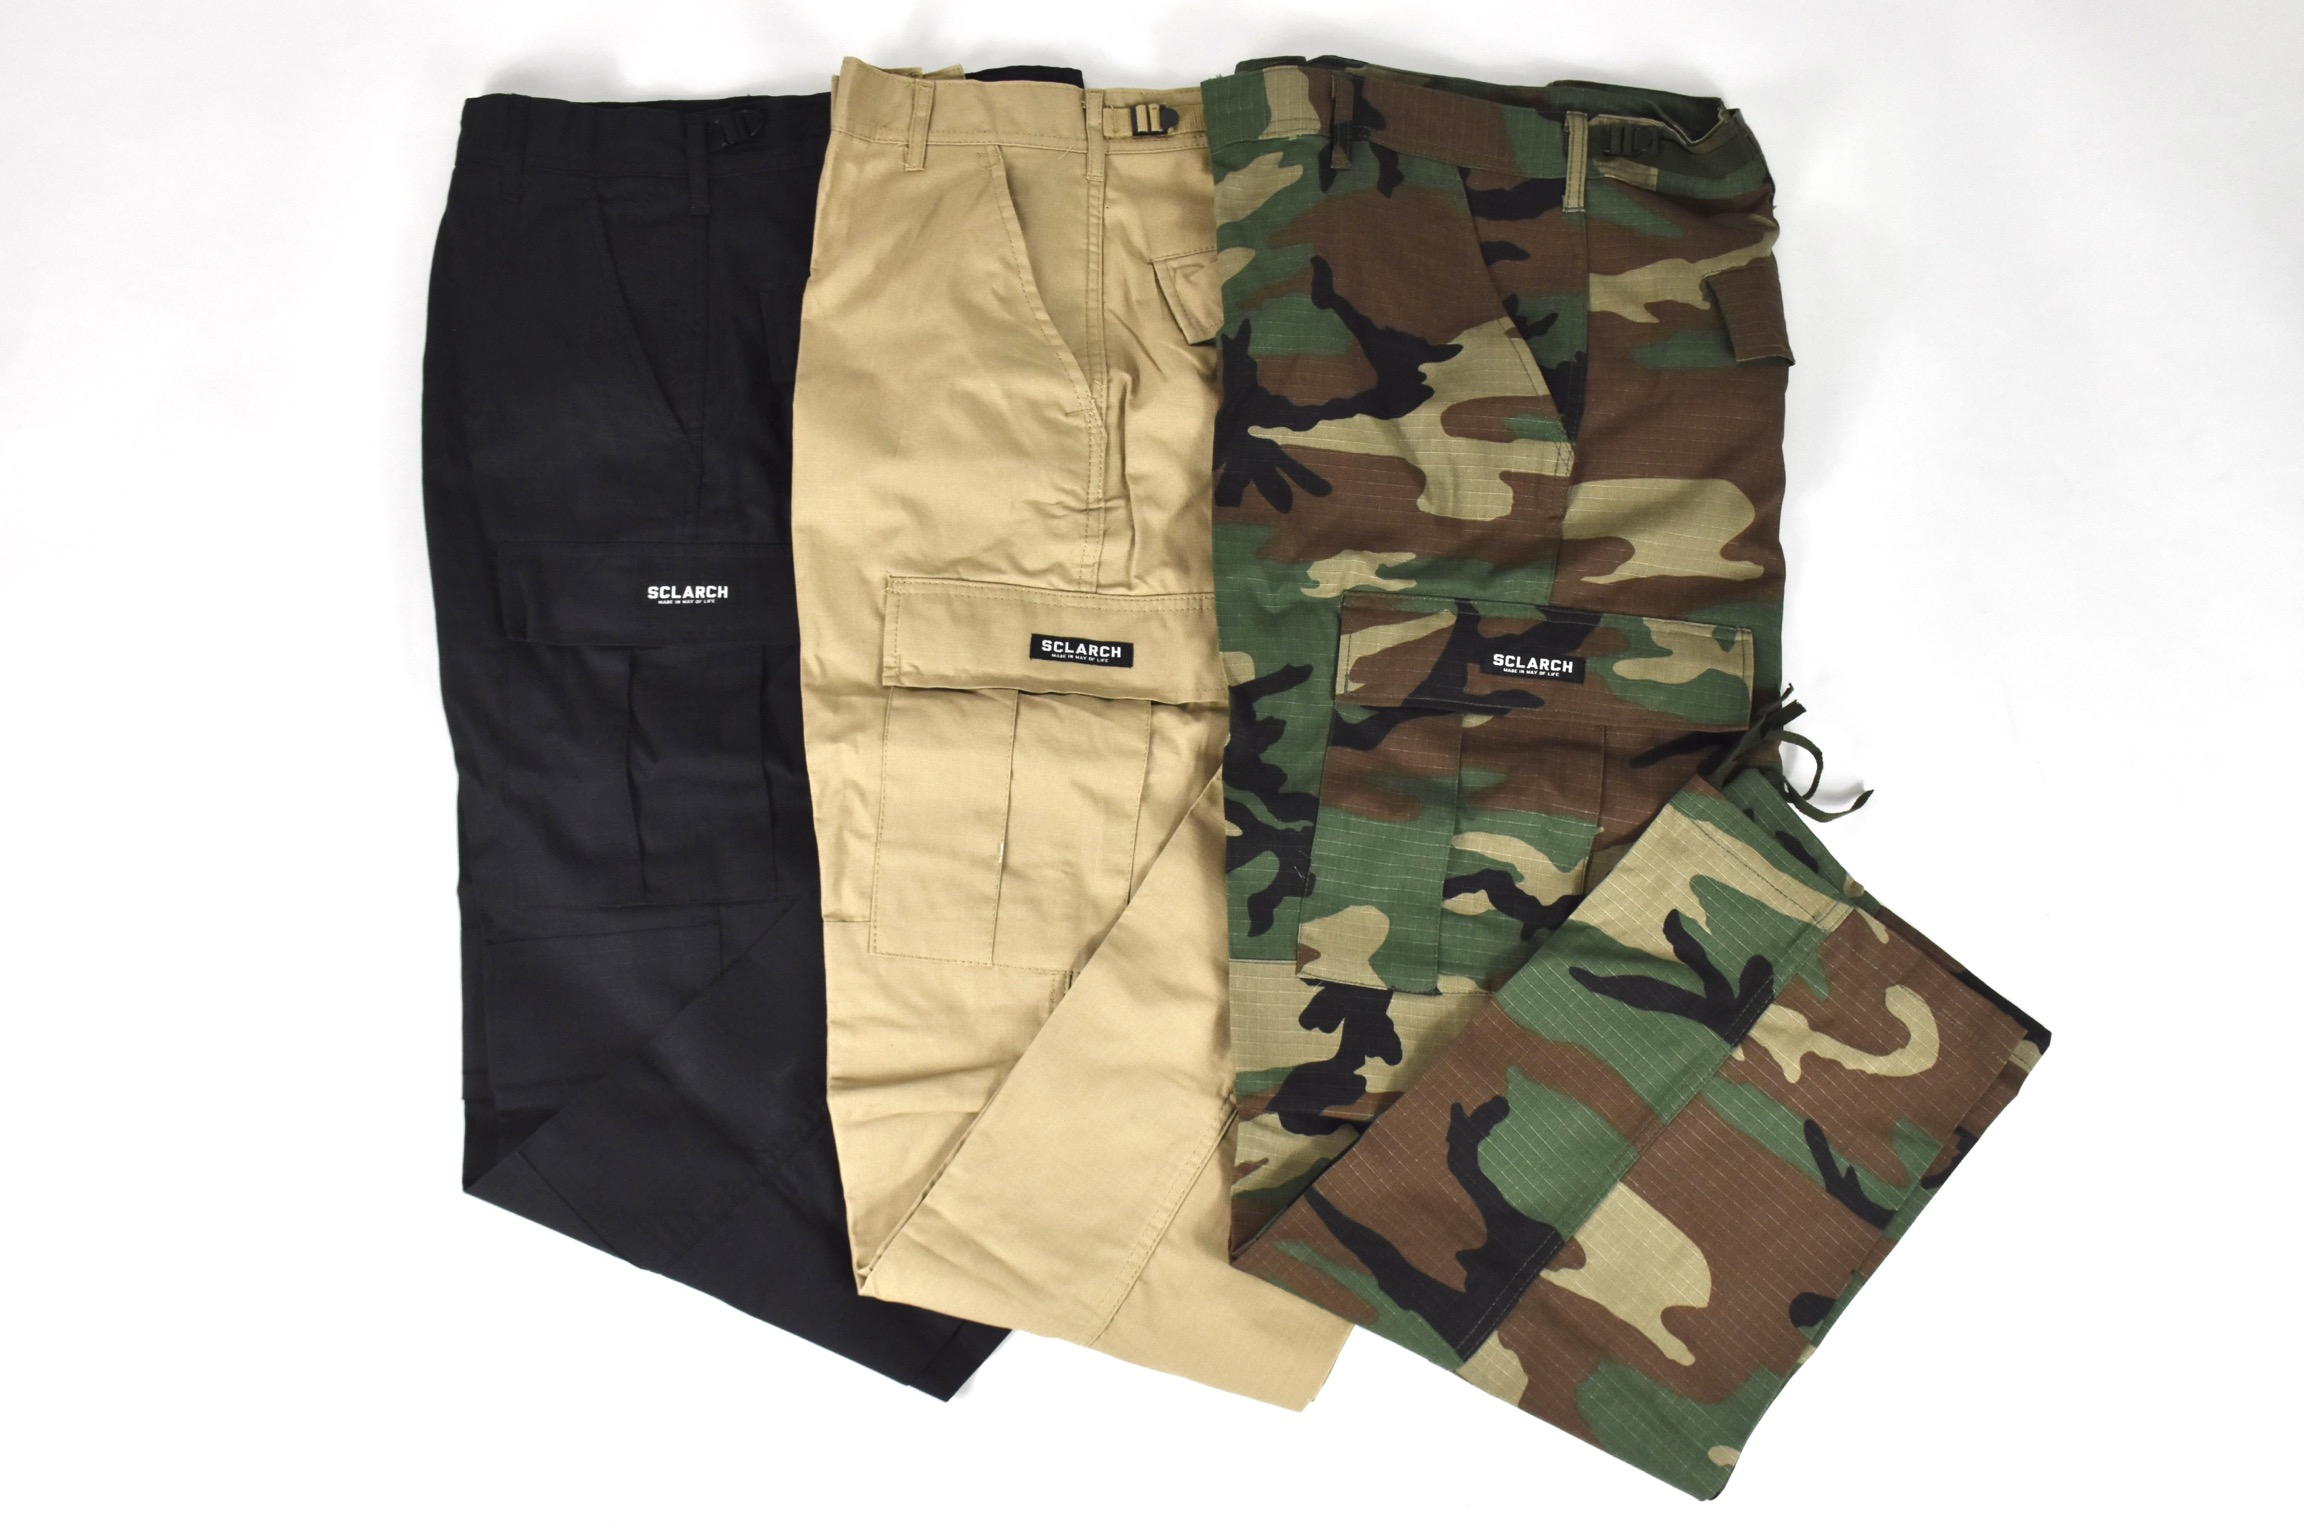 SCLARCH_WIDE_CARGO_PANTS